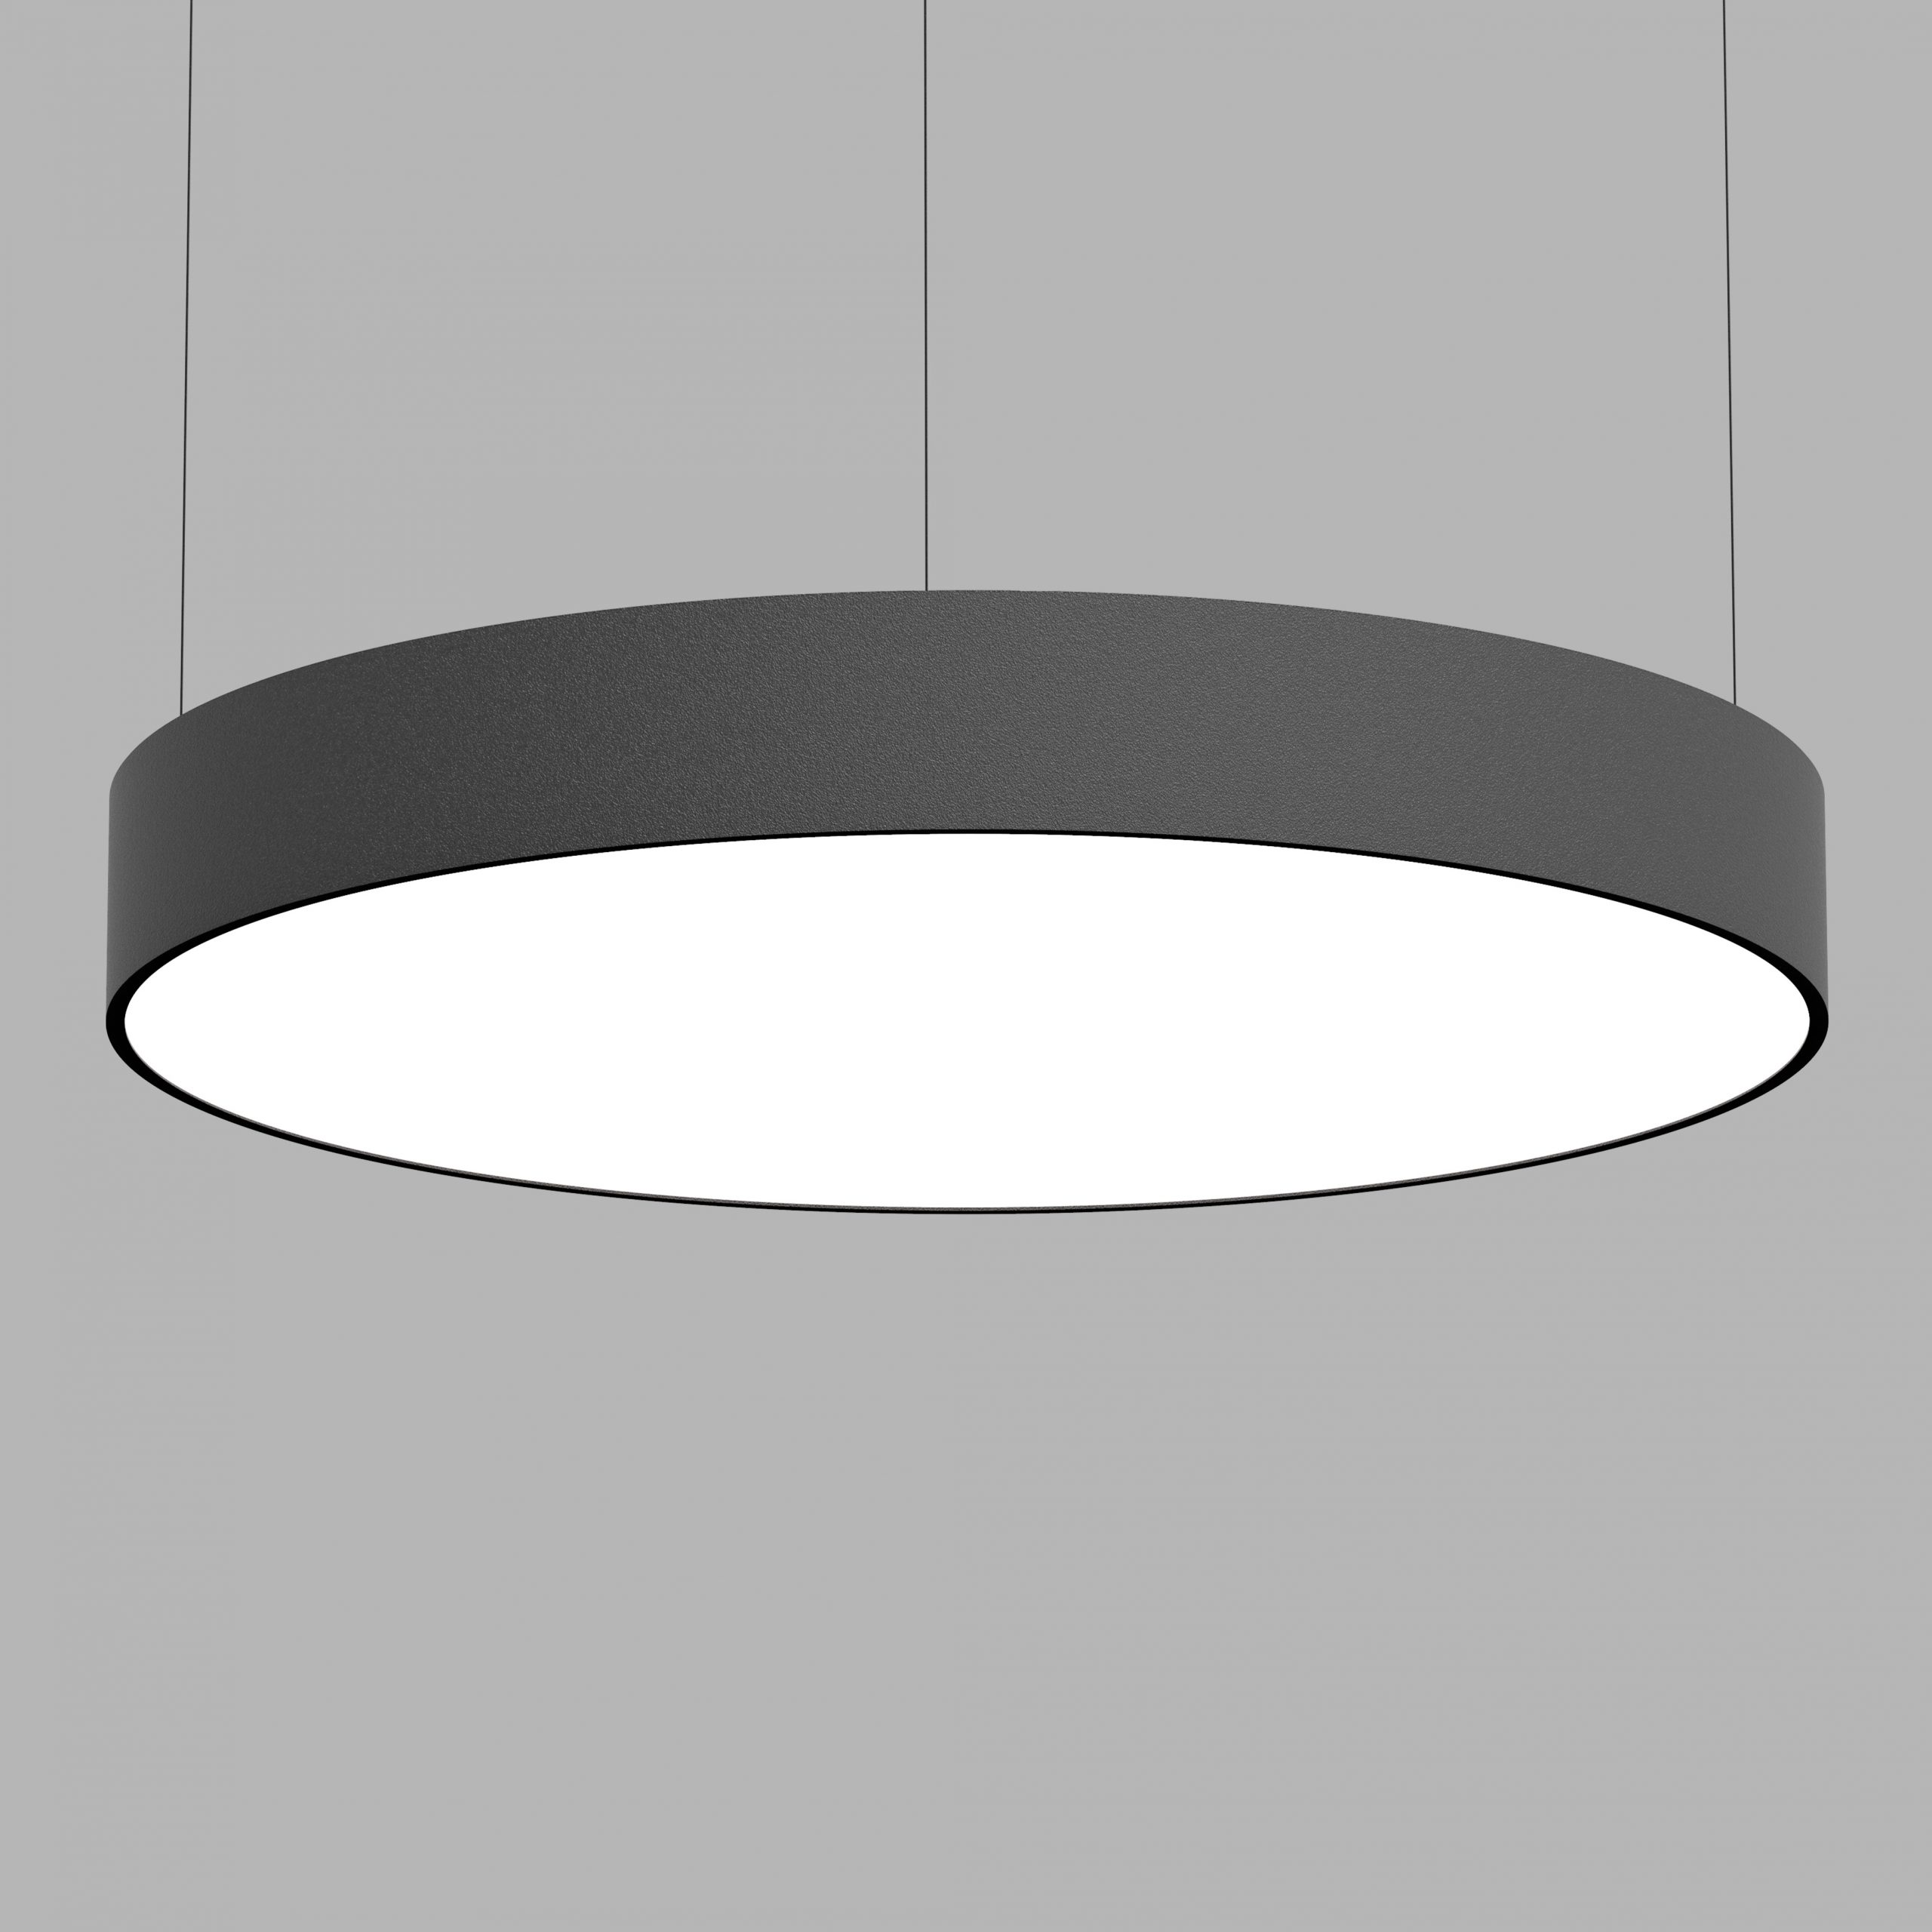 CIRCULAR-PLATE-SUSPENDED-BL